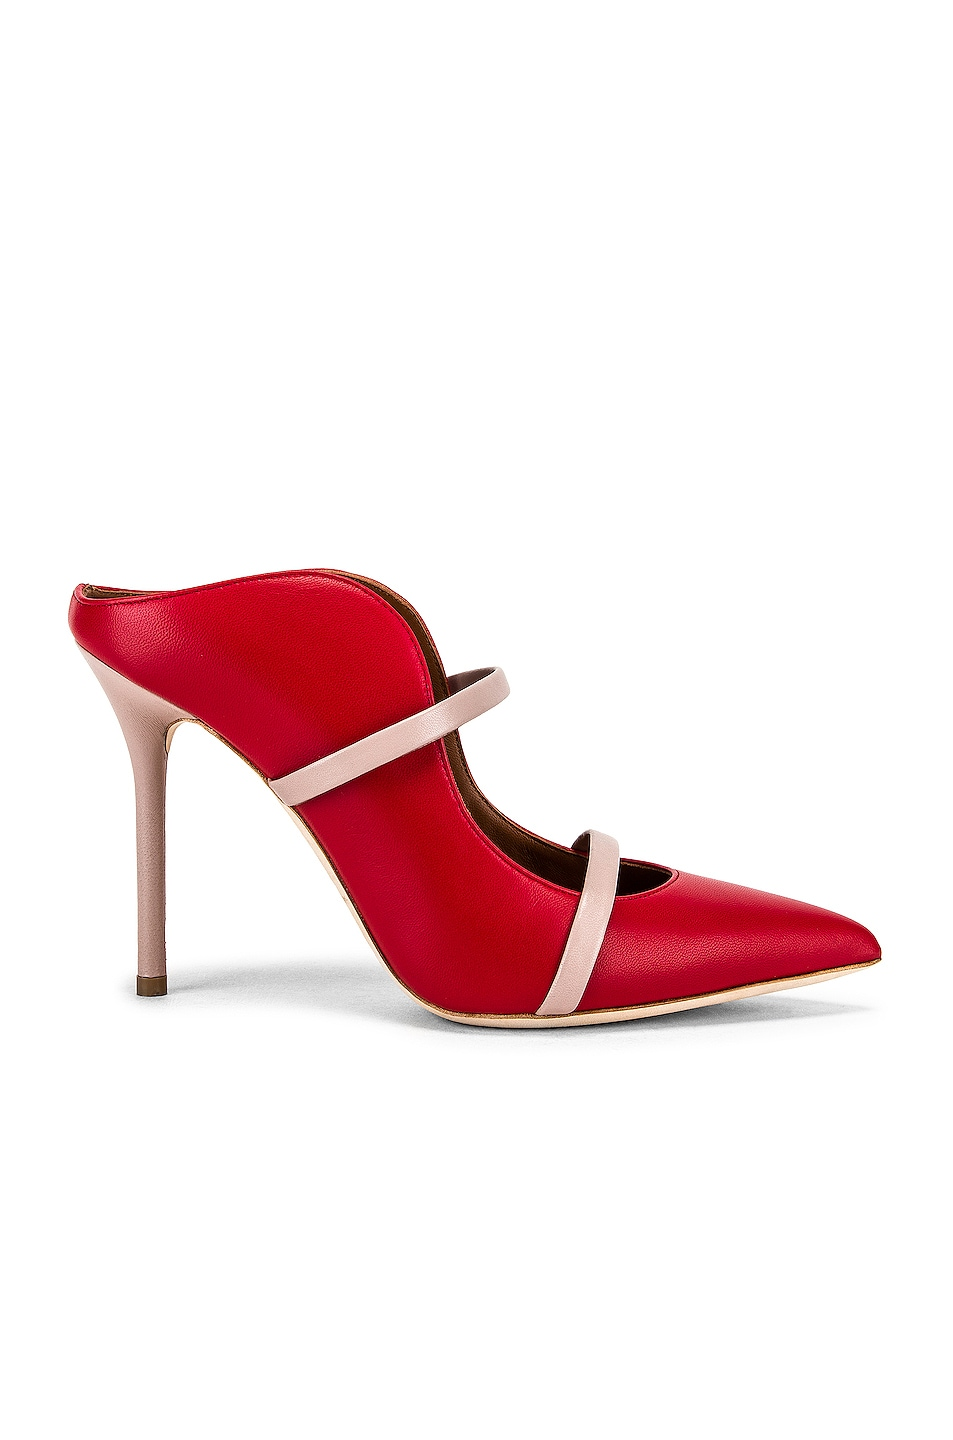 Image 1 of Malone Souliers Maureen MS 100 Heel in Red & Dusty Pink